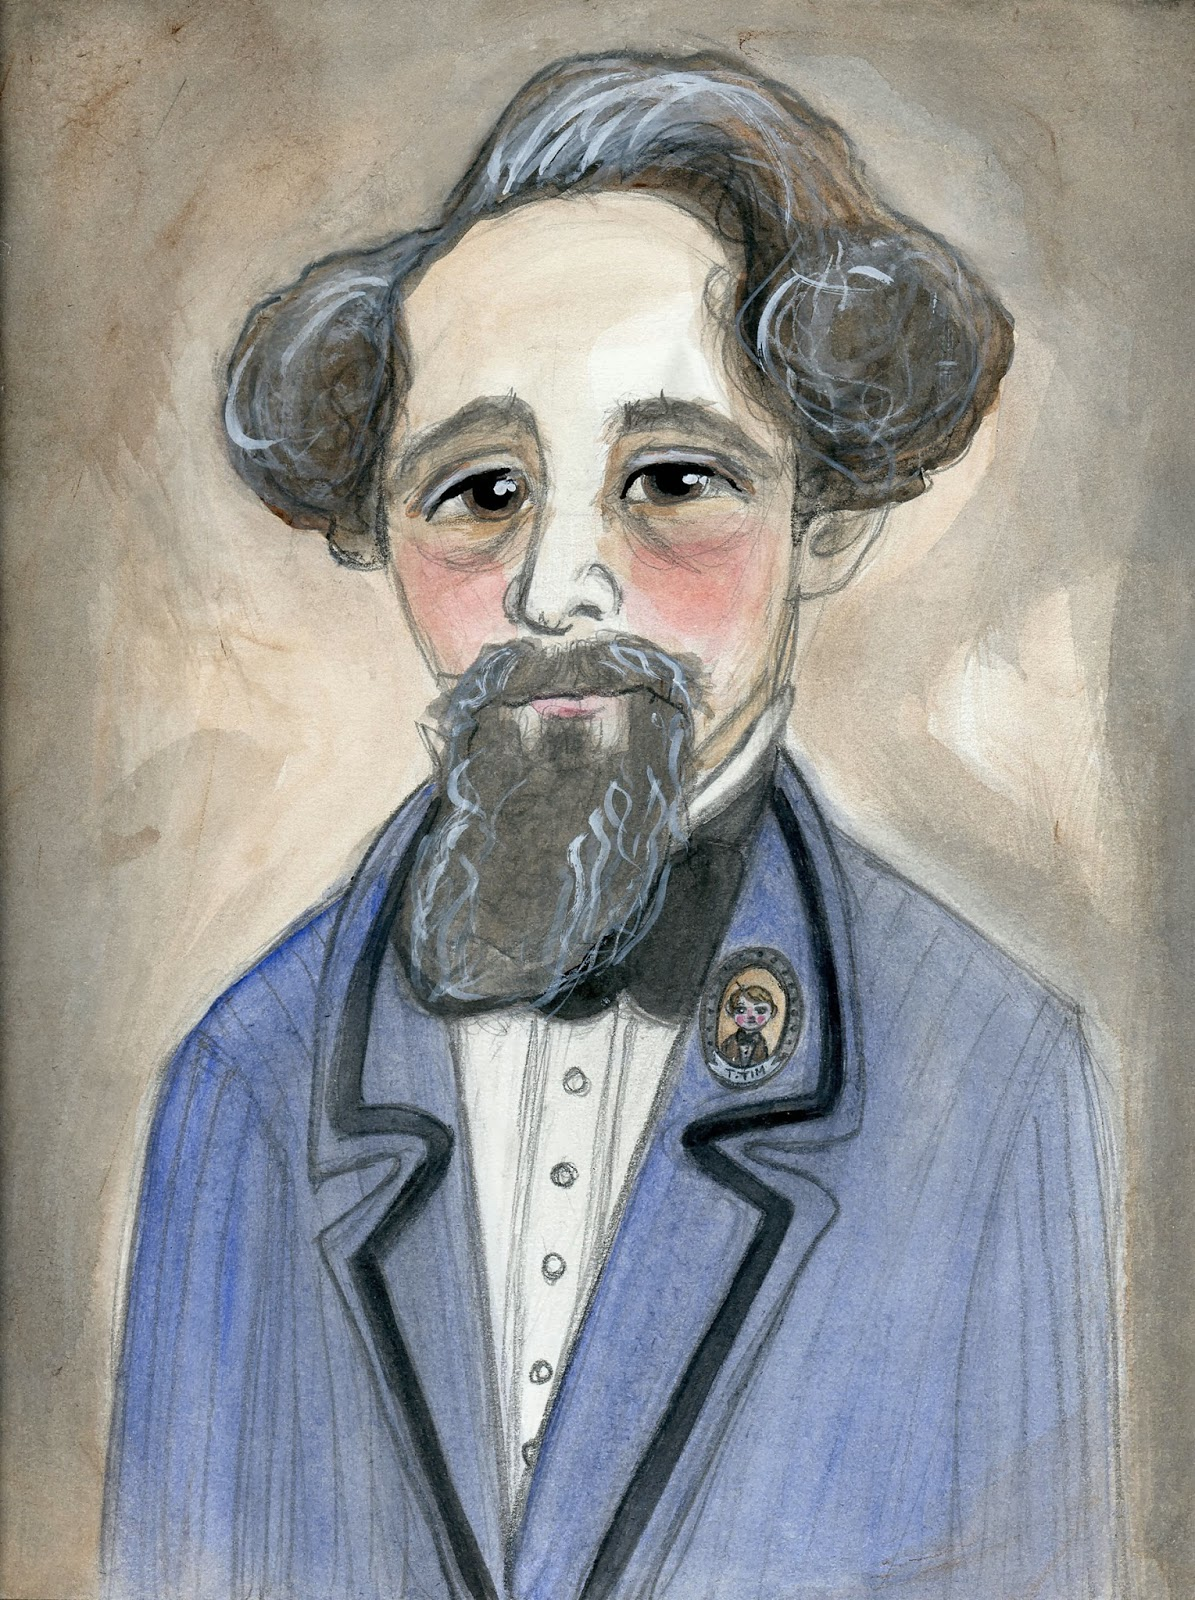 charles dickens 6 essay Exlcusive sample chapter - charles dickens it was at the mitre that the dickens children, charles these were the titles dickens gave the essays when he.